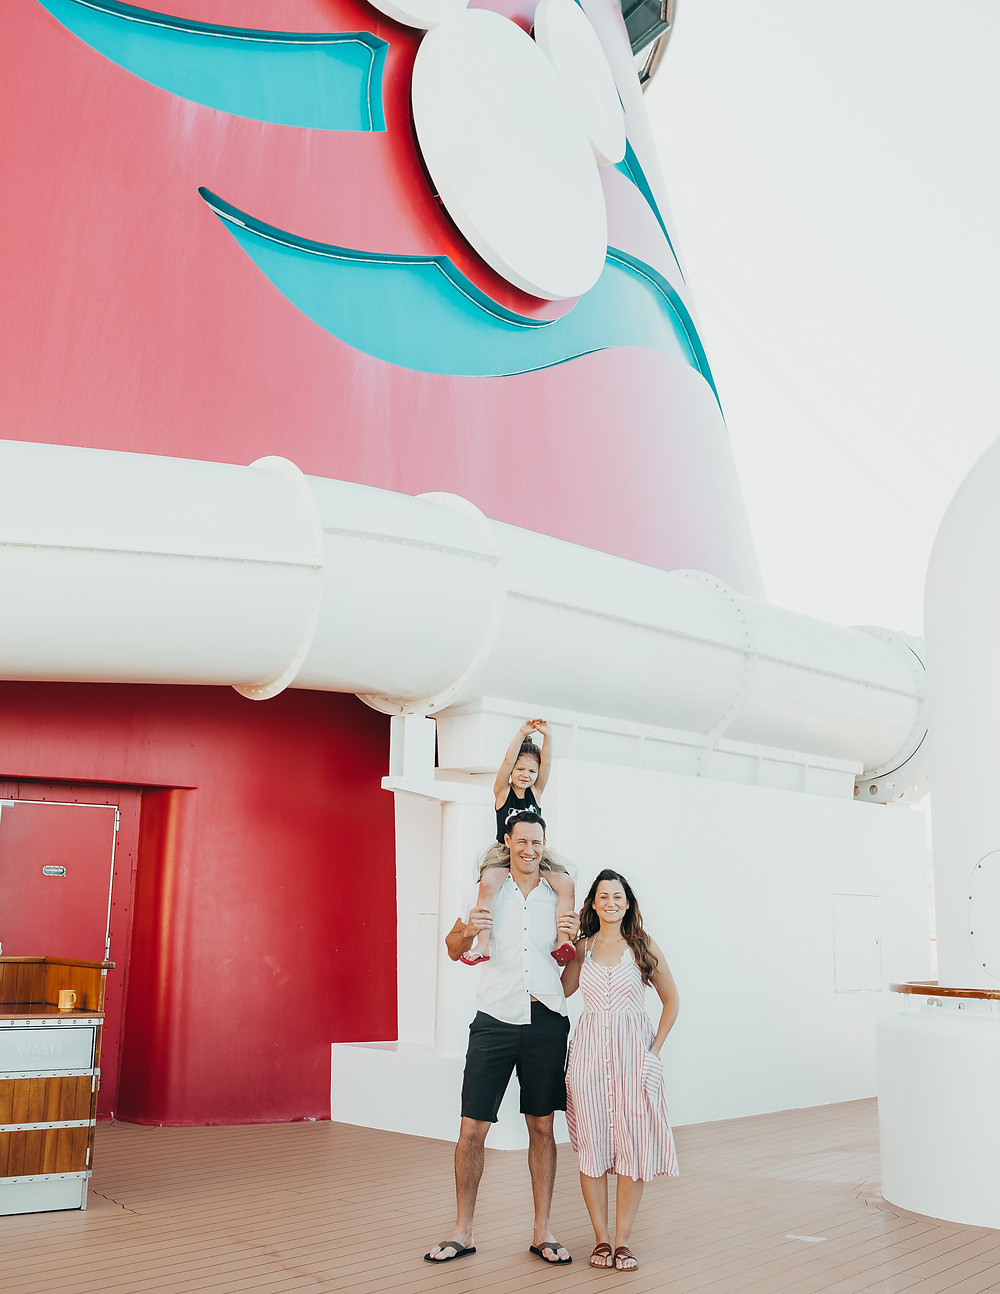 A family standing together on a Disney Cruise ship.